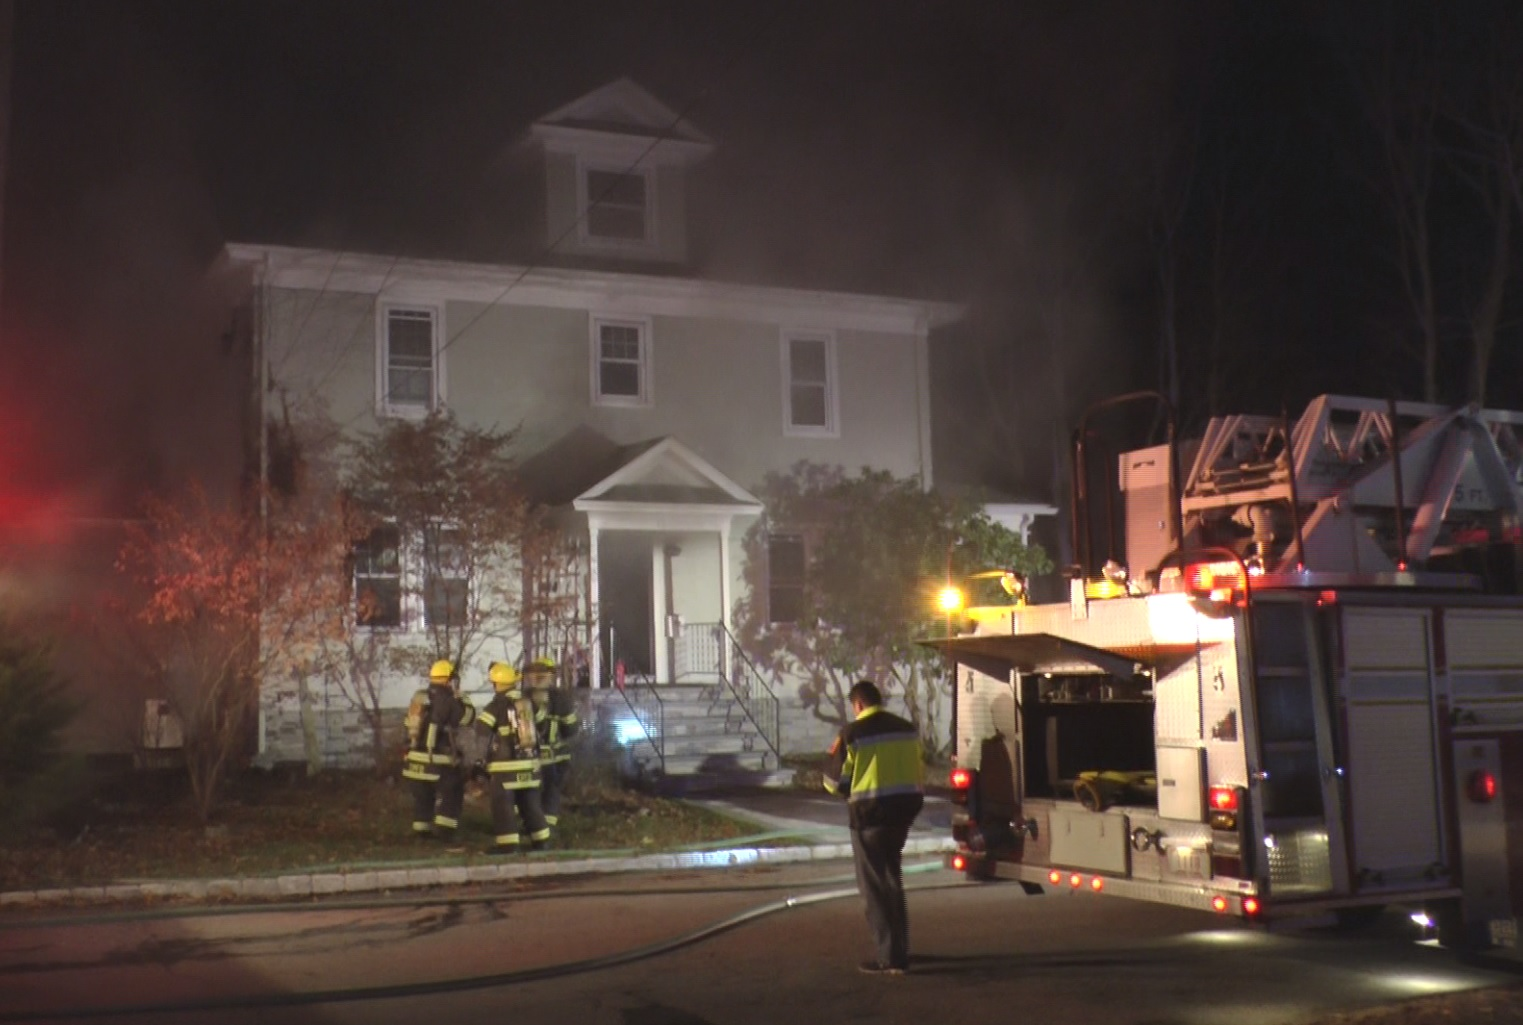 A Seekonk firefighter was injured at a Barrington house fire Wednesday night, a witness told NBC 10 News. (WJAR){ }